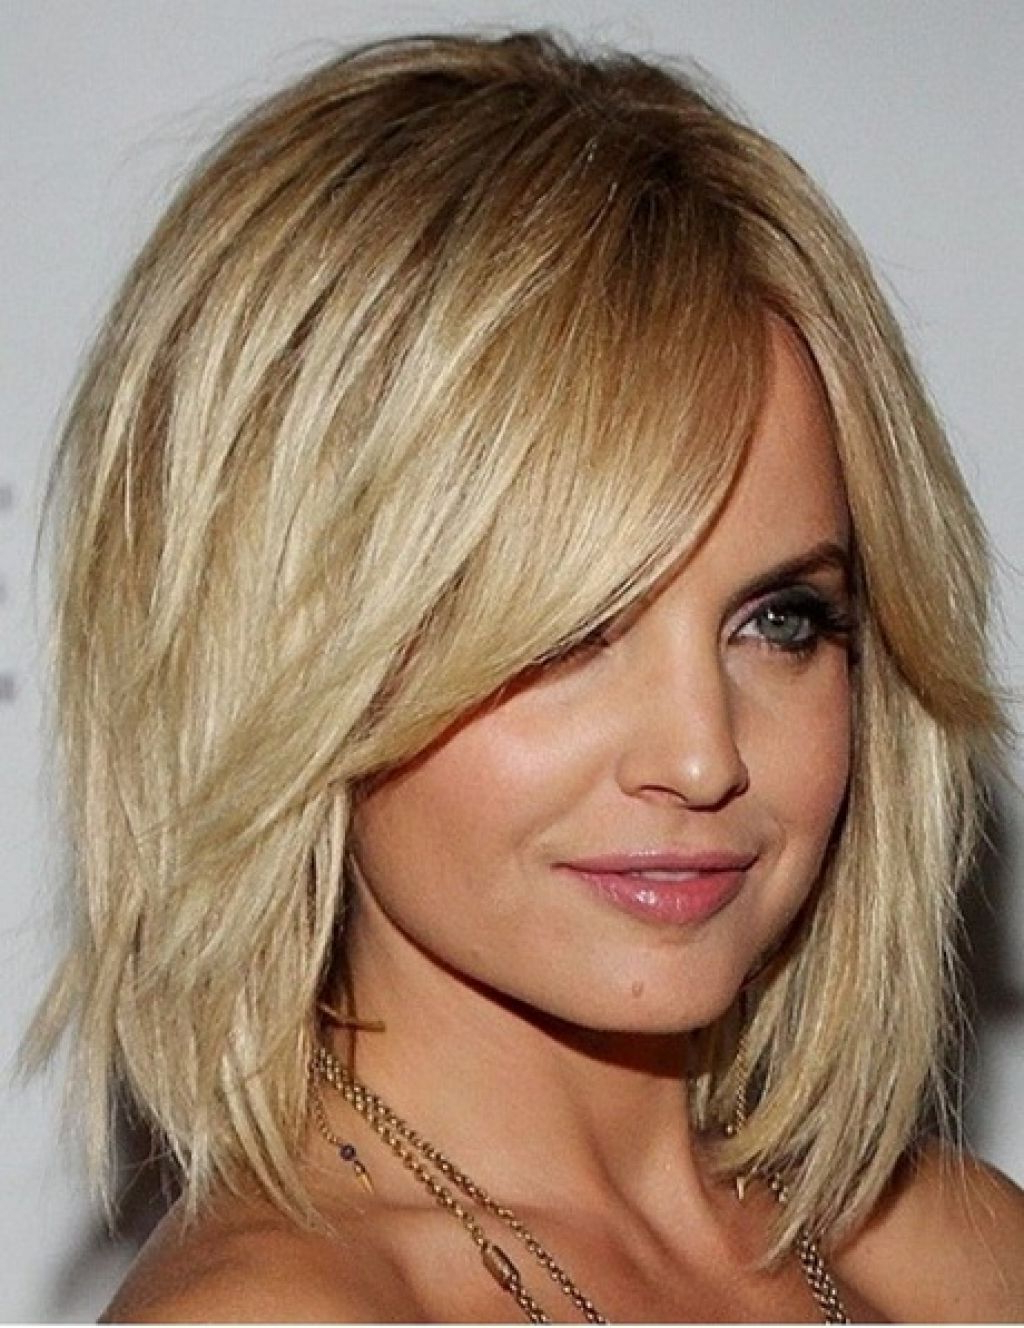 Hair Cuts : Mid Length Haircuts For Fine Hair Choppy Medium Ideas Throughout 2018 Medium Hairstyles For Oval Faces And Fine Hair (View 9 of 20)